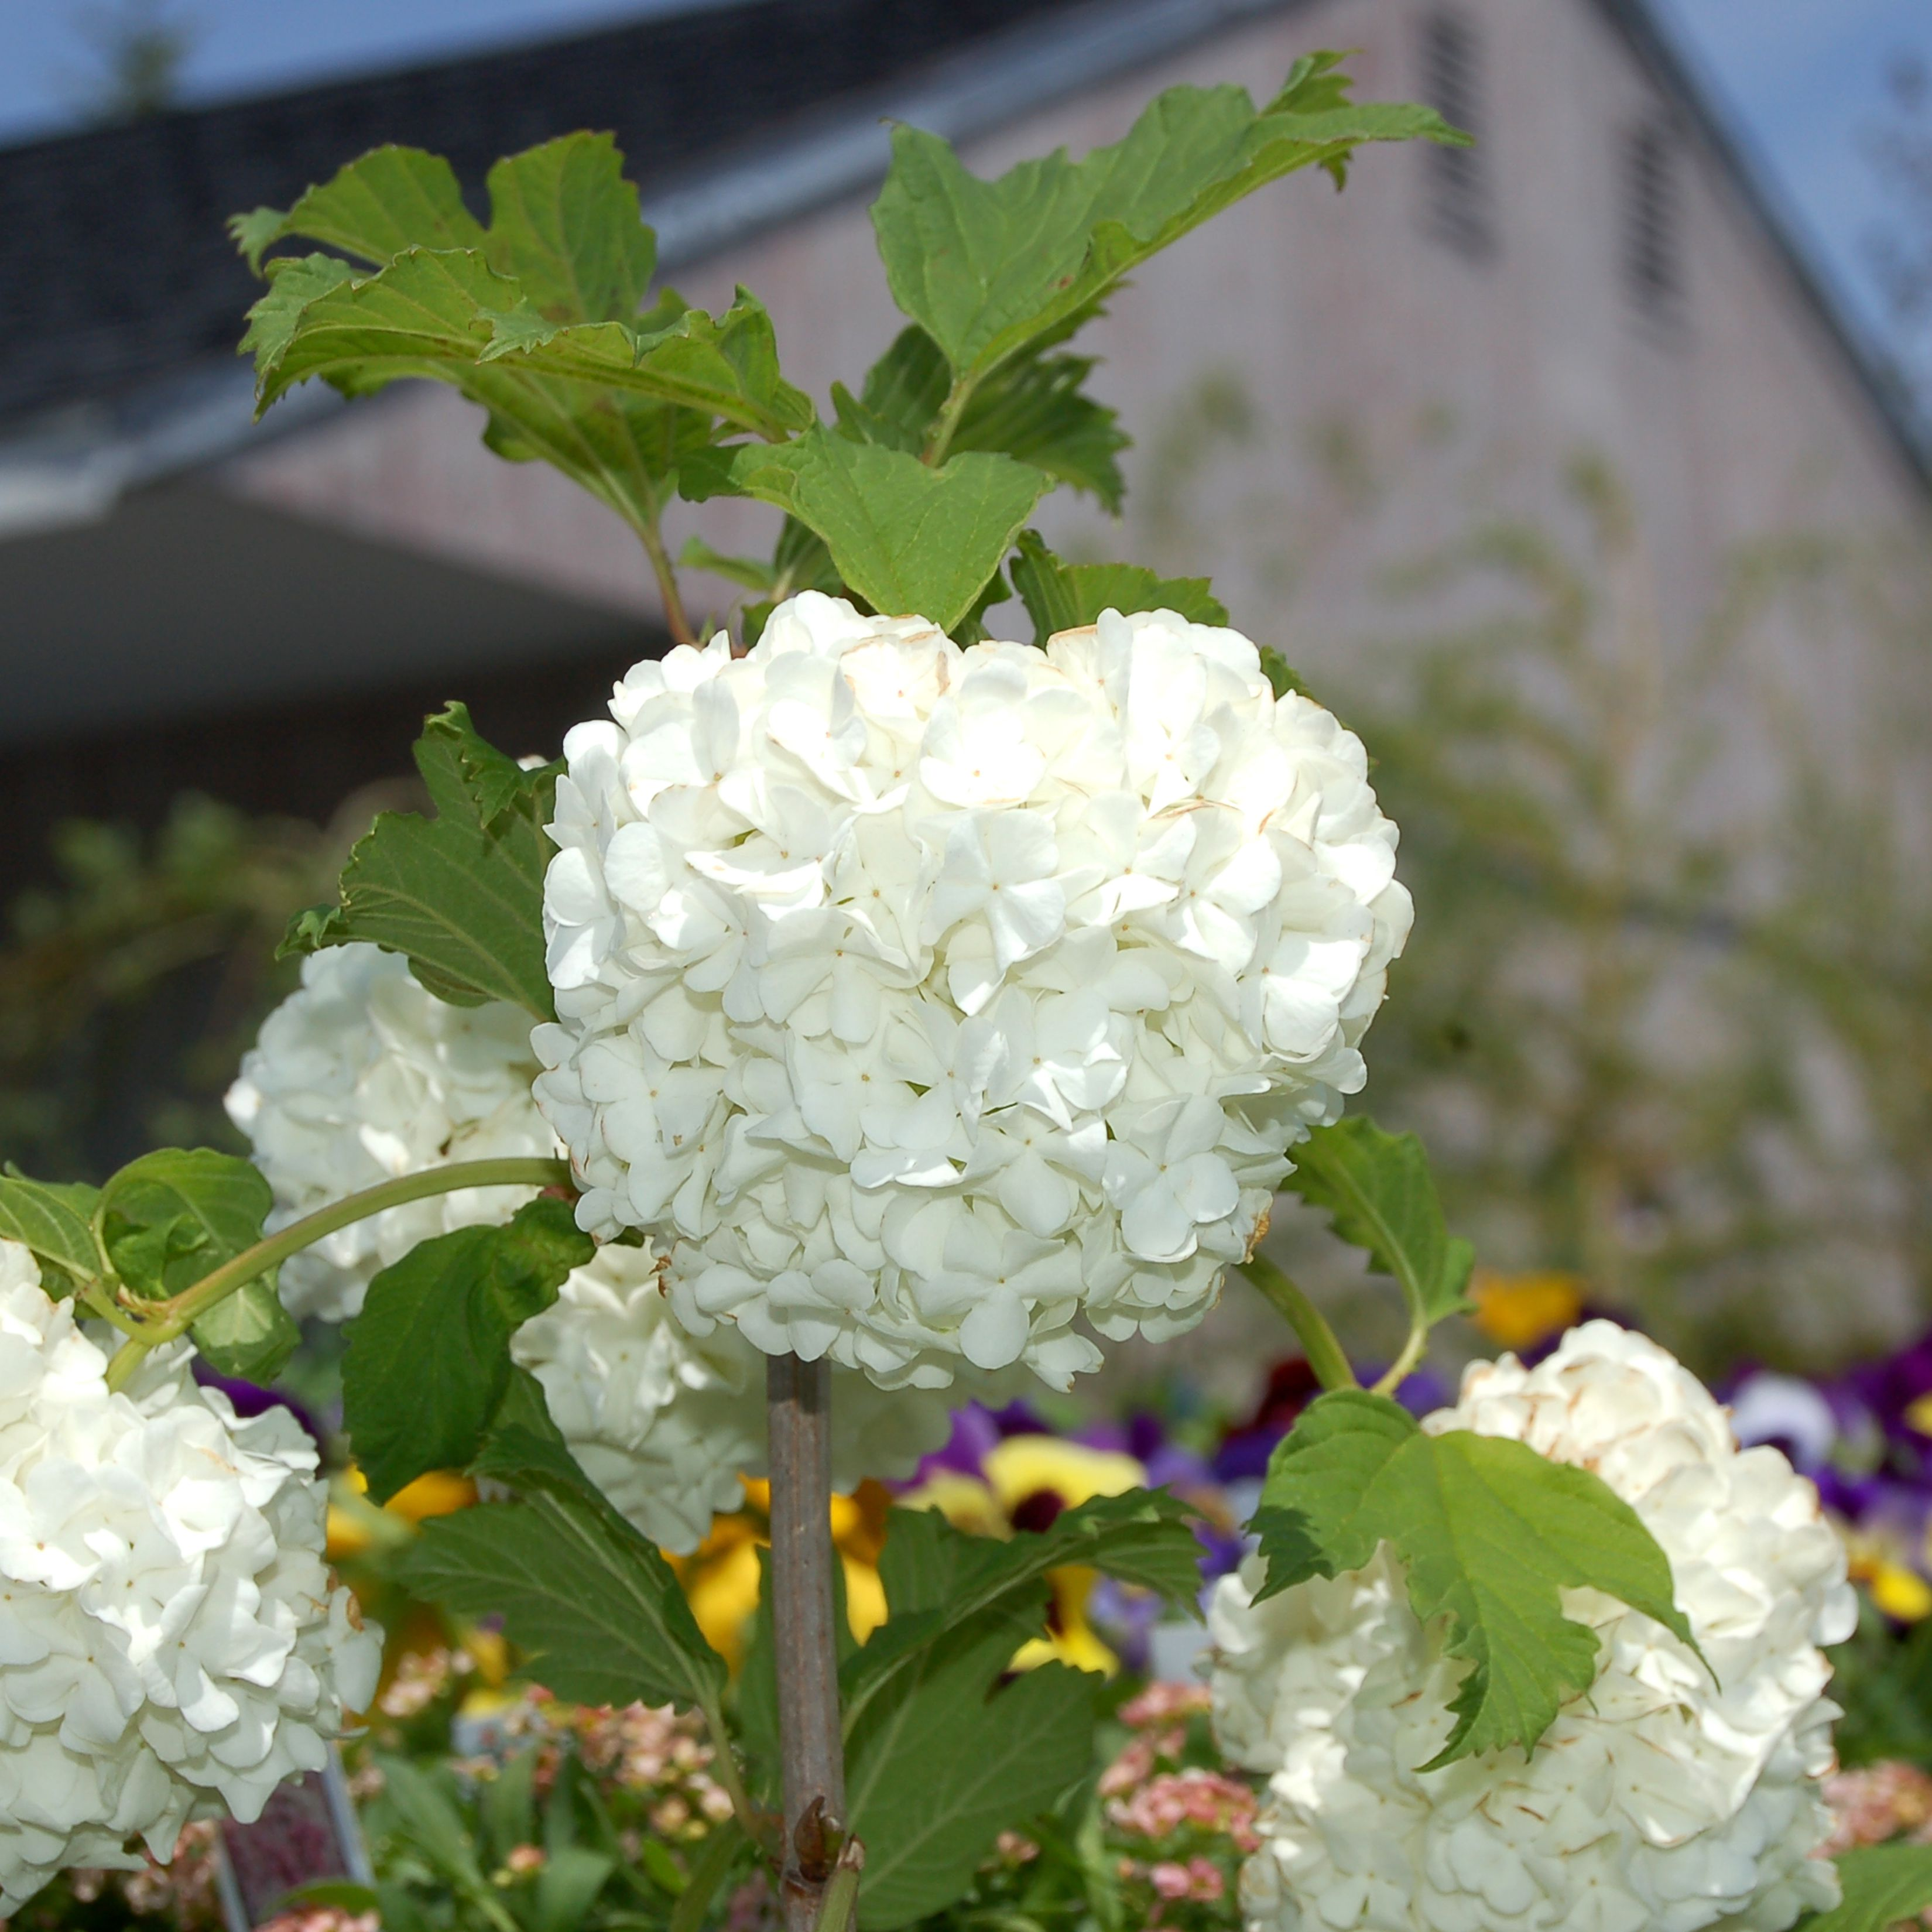 How to Grow and Care for Snowball Bush Viburnum